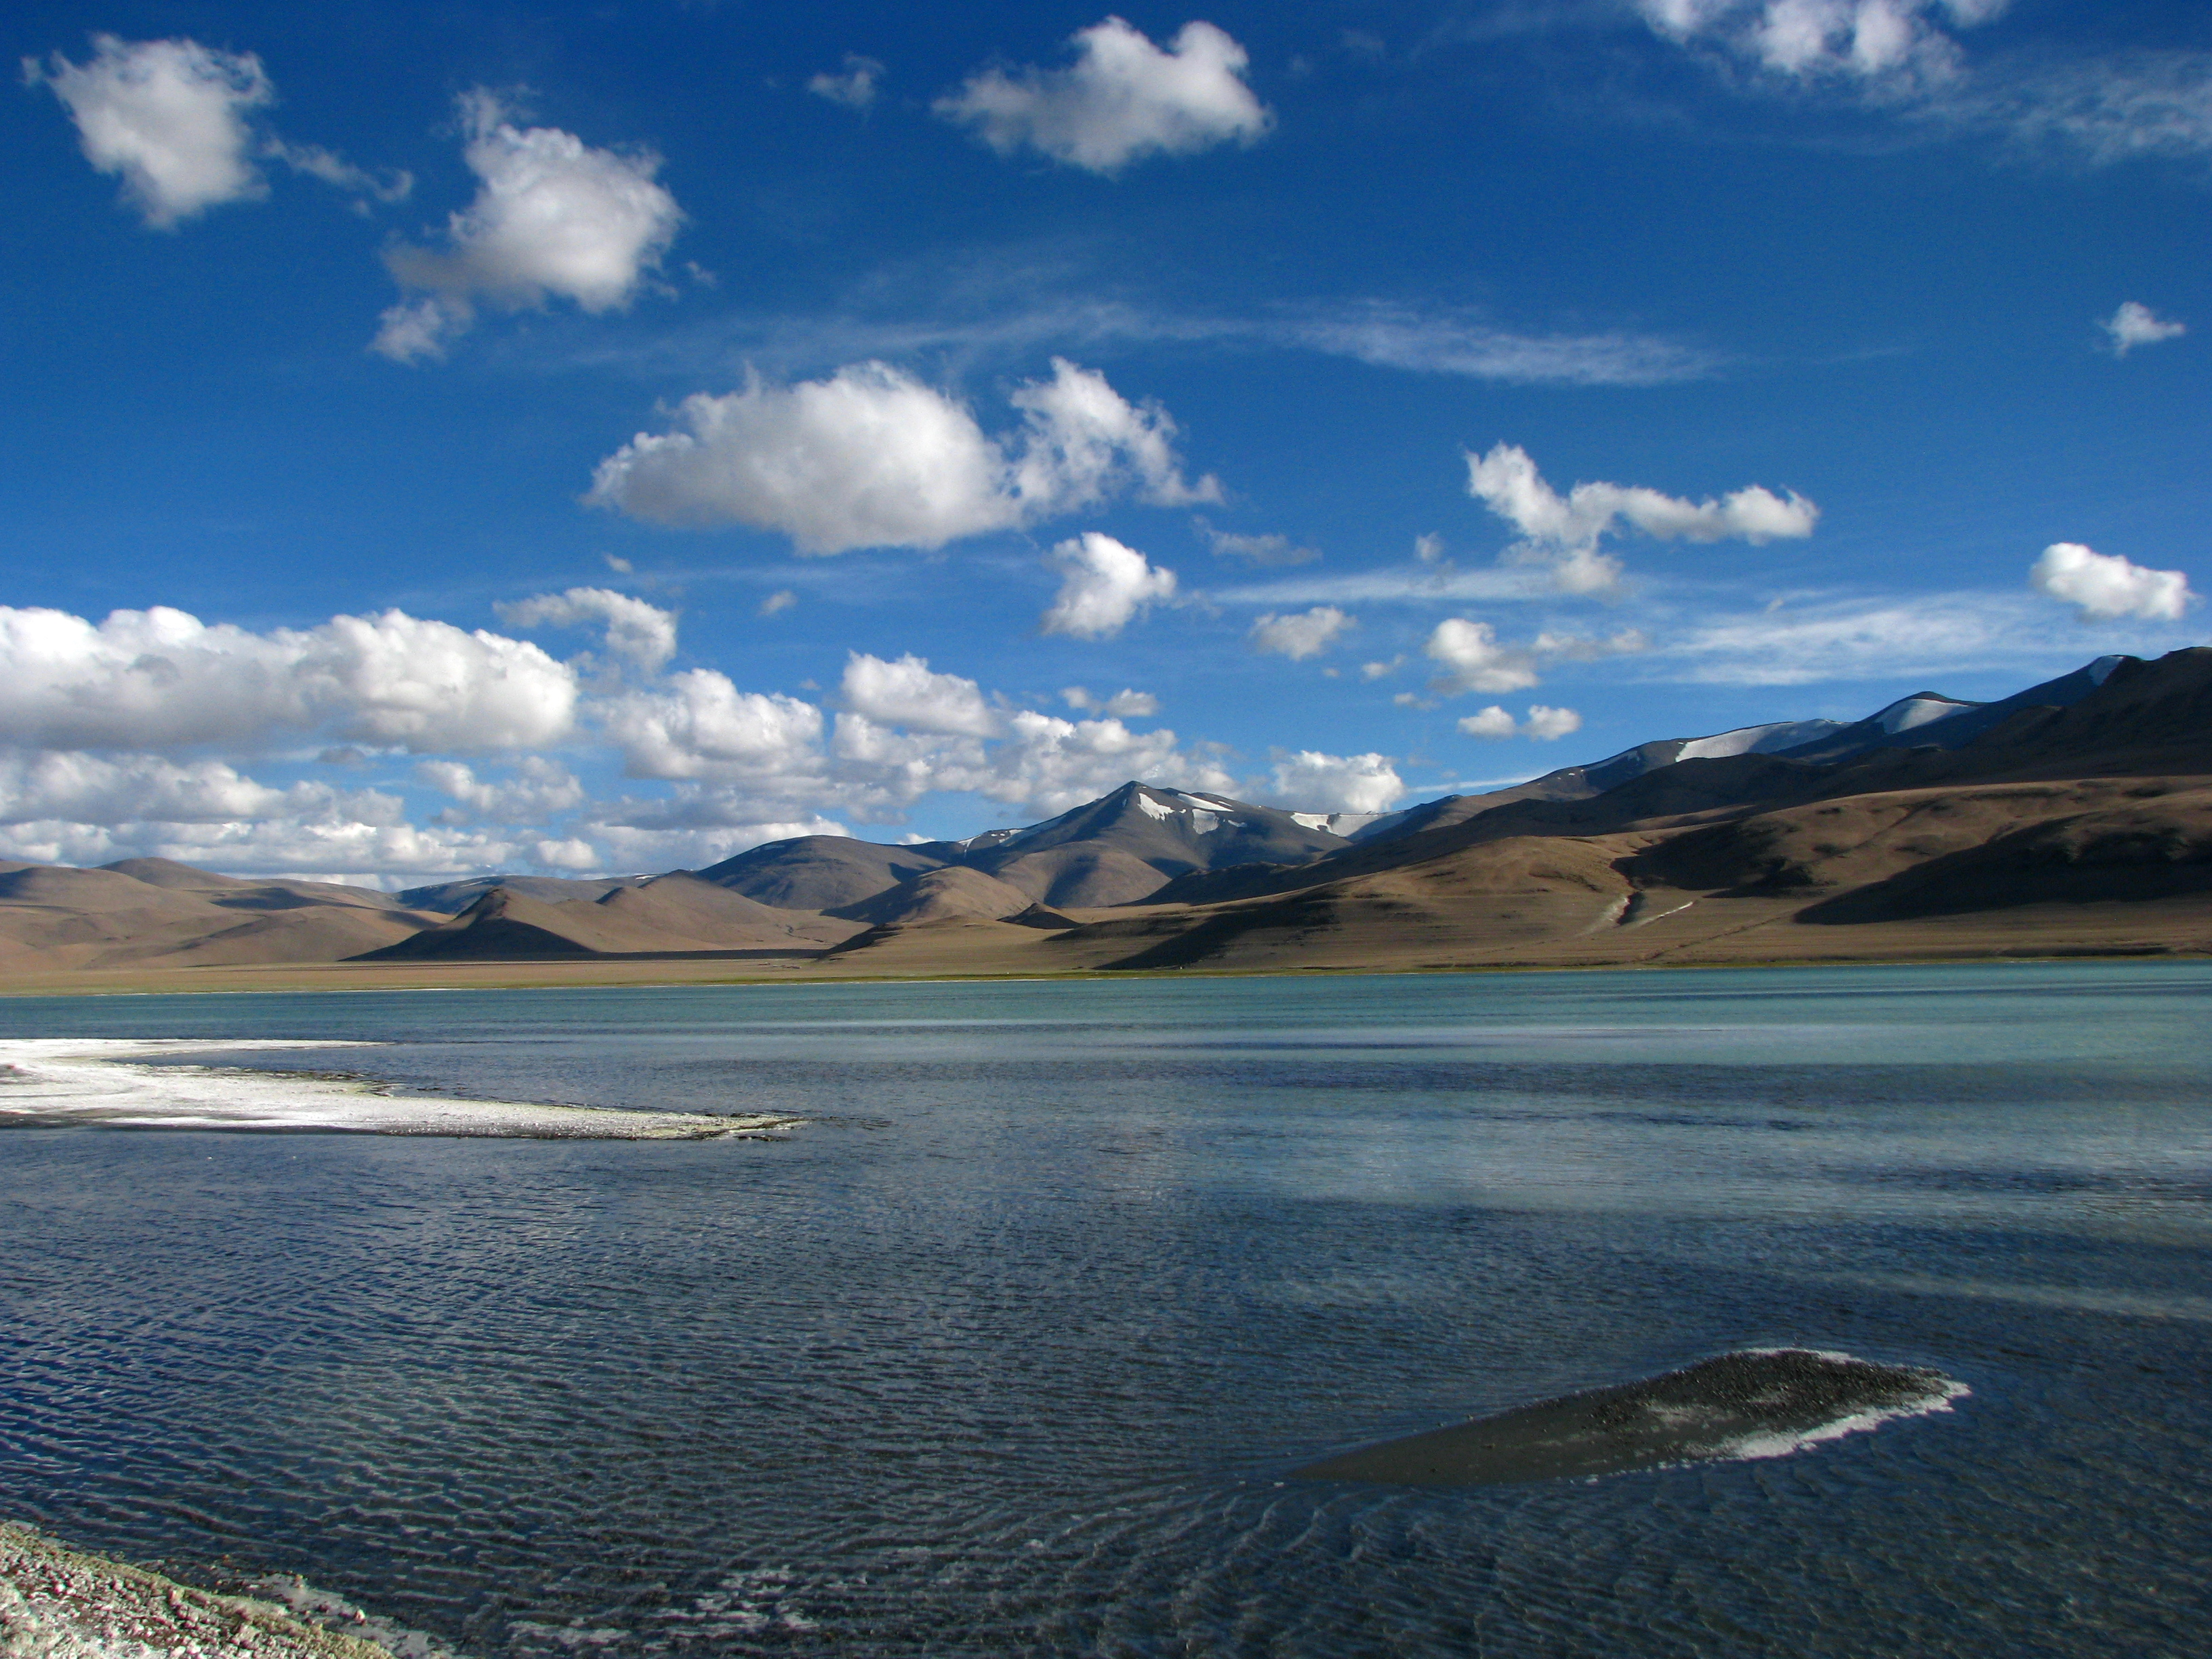 The Alchemist Quotes Wallpaper Tso Moriri Lake Leh Ladakh Images Best Time To Visit